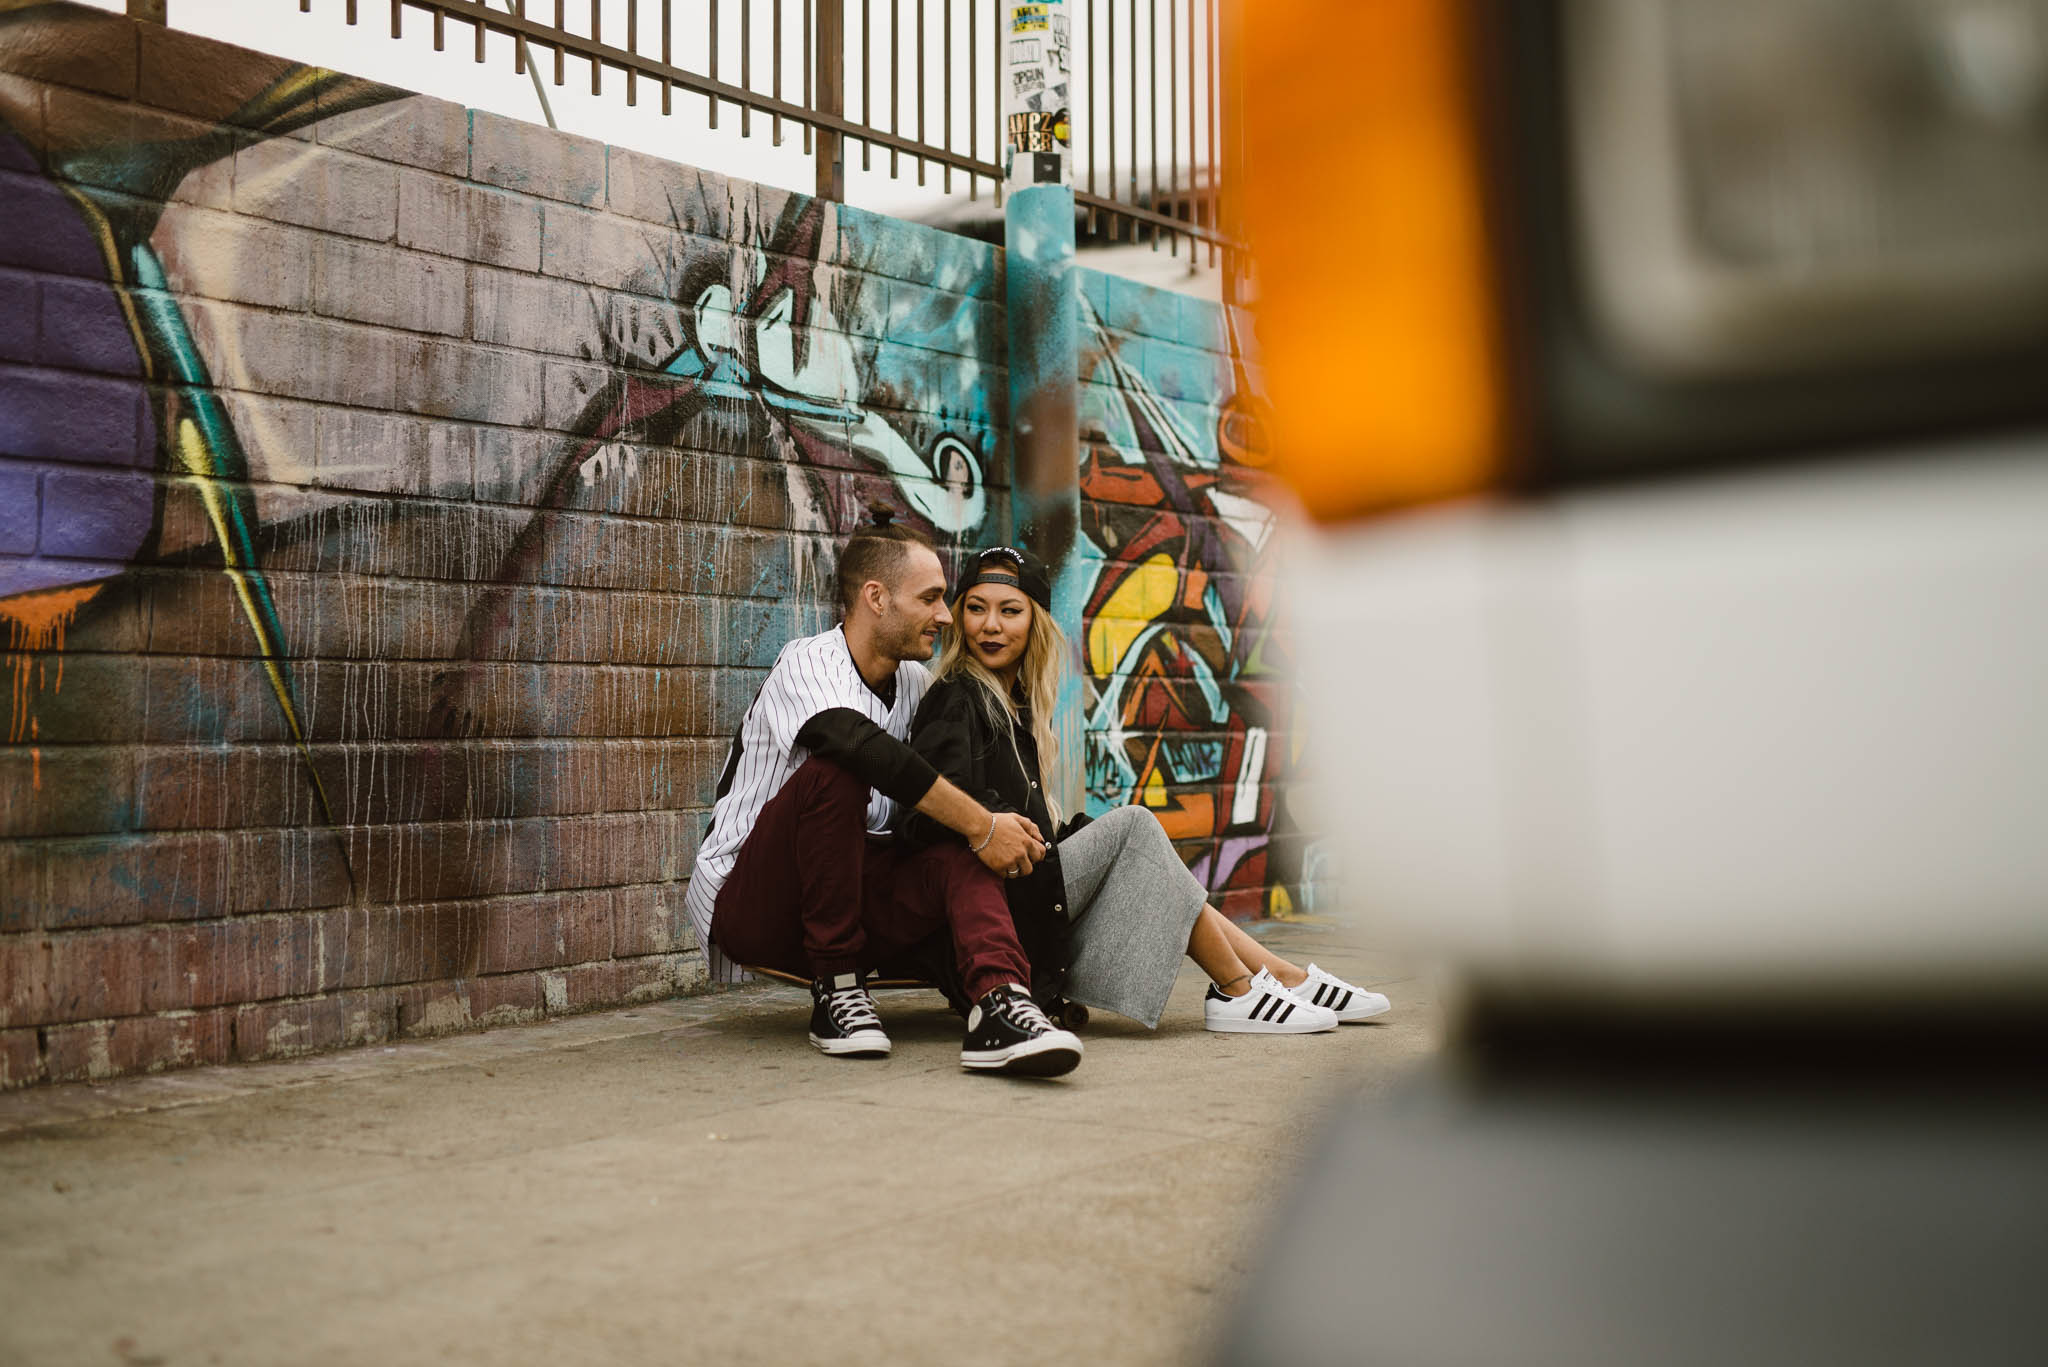 ©Isaiah-&-Taylor-Photography---Downtown-Los-Angeles-Skyline-Engagement-019.jpg